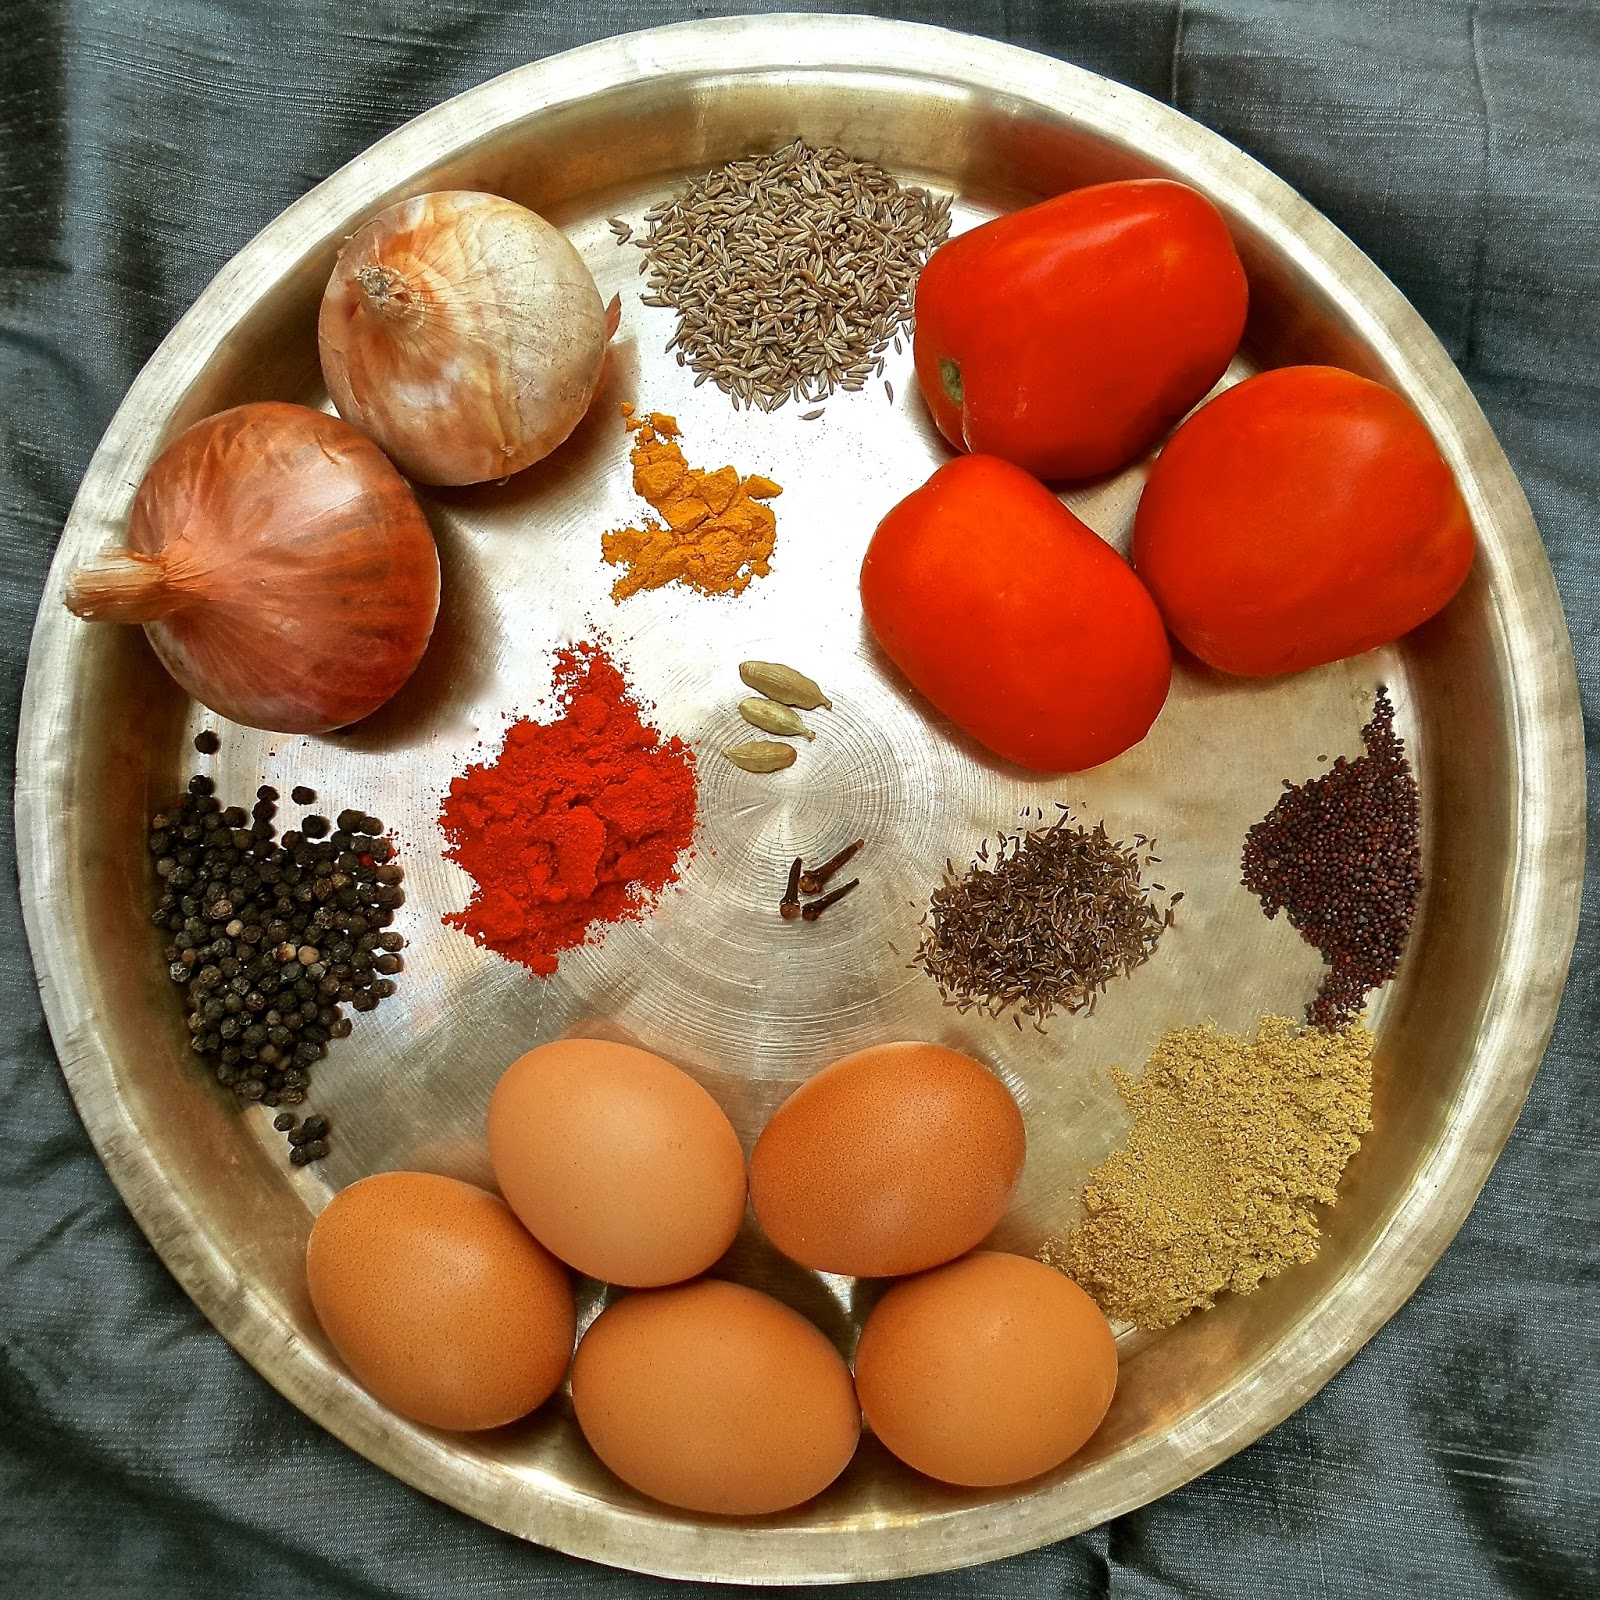 Keep calm curry on chettinad style egg curry chettinad is a region of southern india famed for its vibrant and fiery cuisine hard boiled eggs are tossed in a delectably spicy sauce in this signature forumfinder Gallery